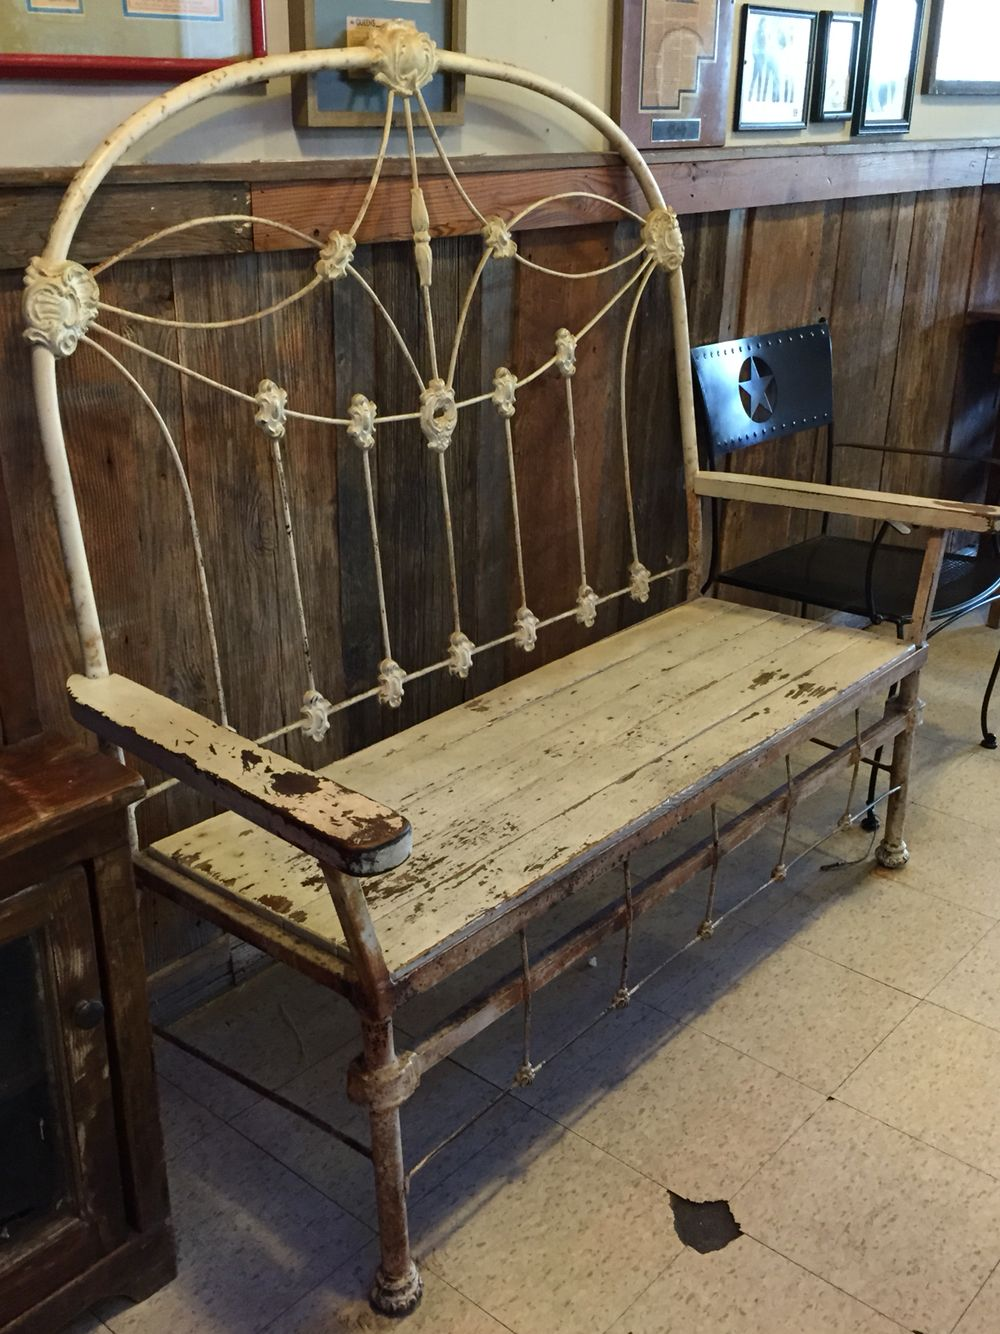 Best Antique Iron Bed Reclaimed Wood Made Into A Bench 400 x 300